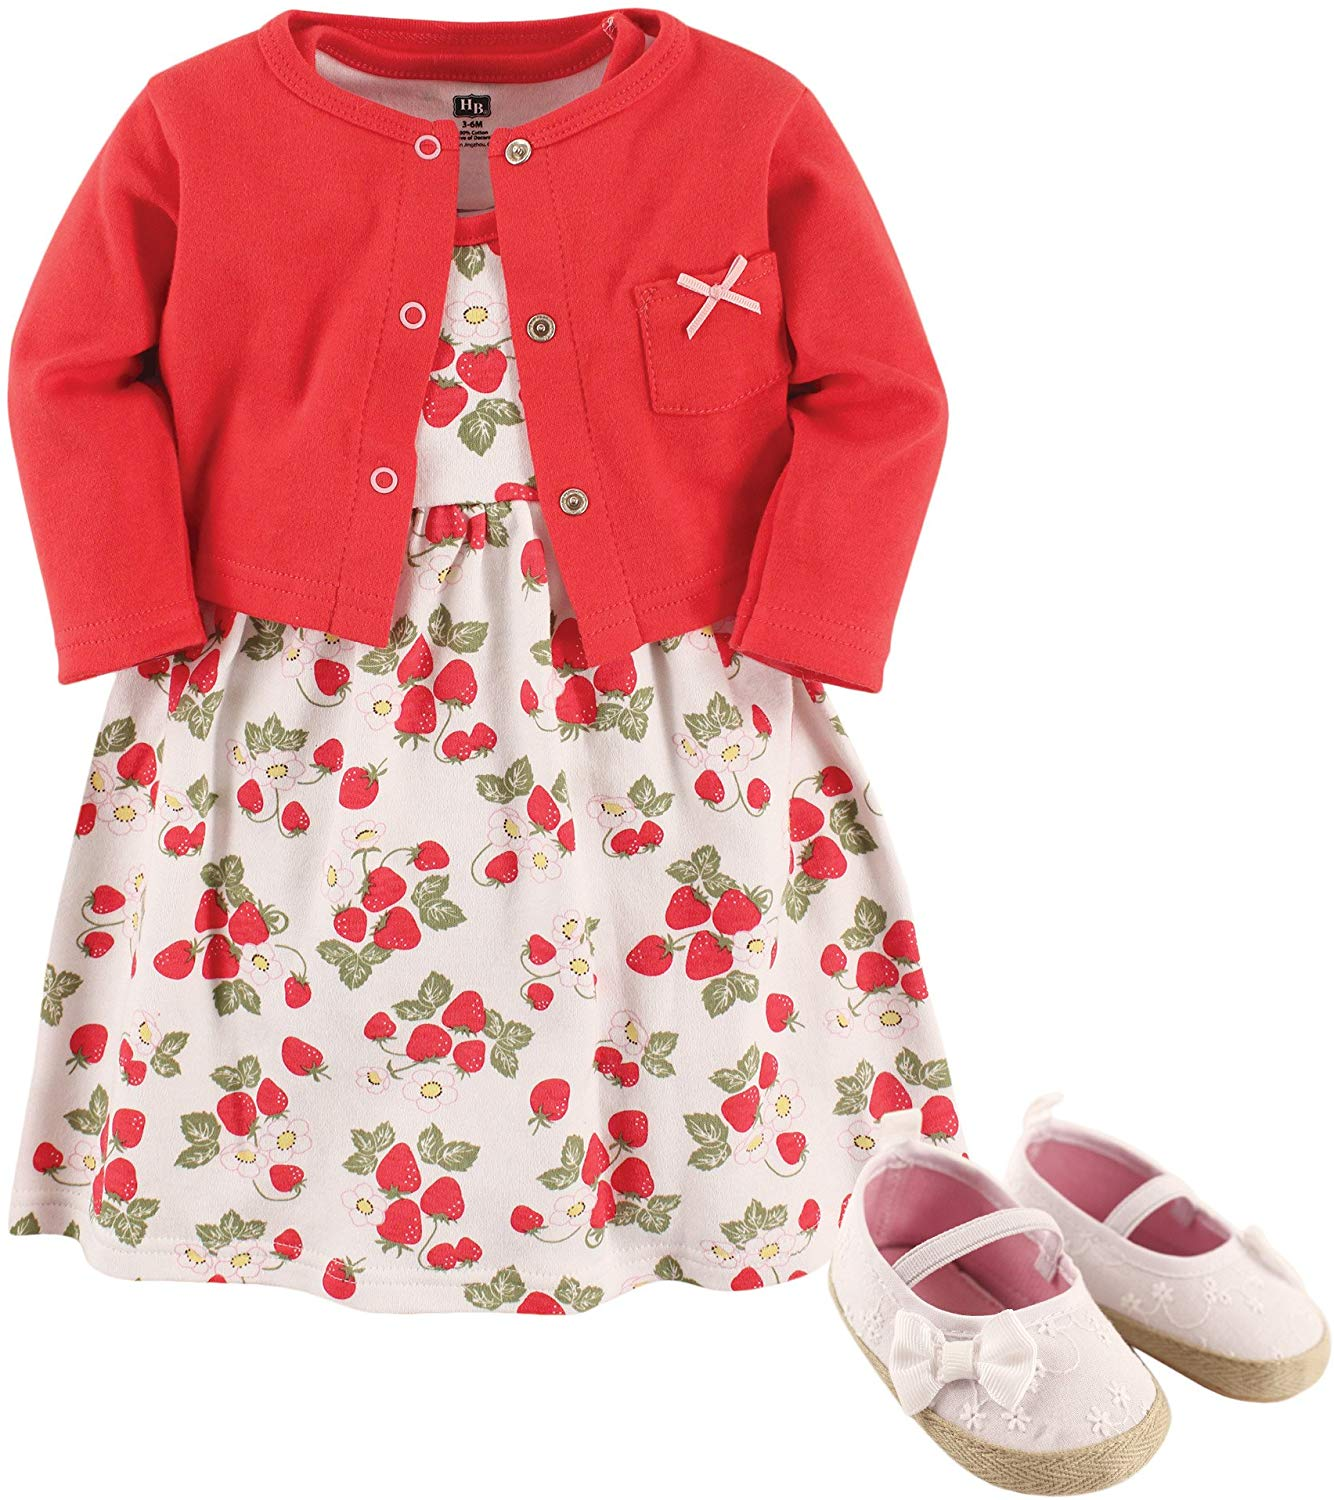 Hudson Baby Girl Dress, Cardigan and Shoes - Strawberry gift ideas